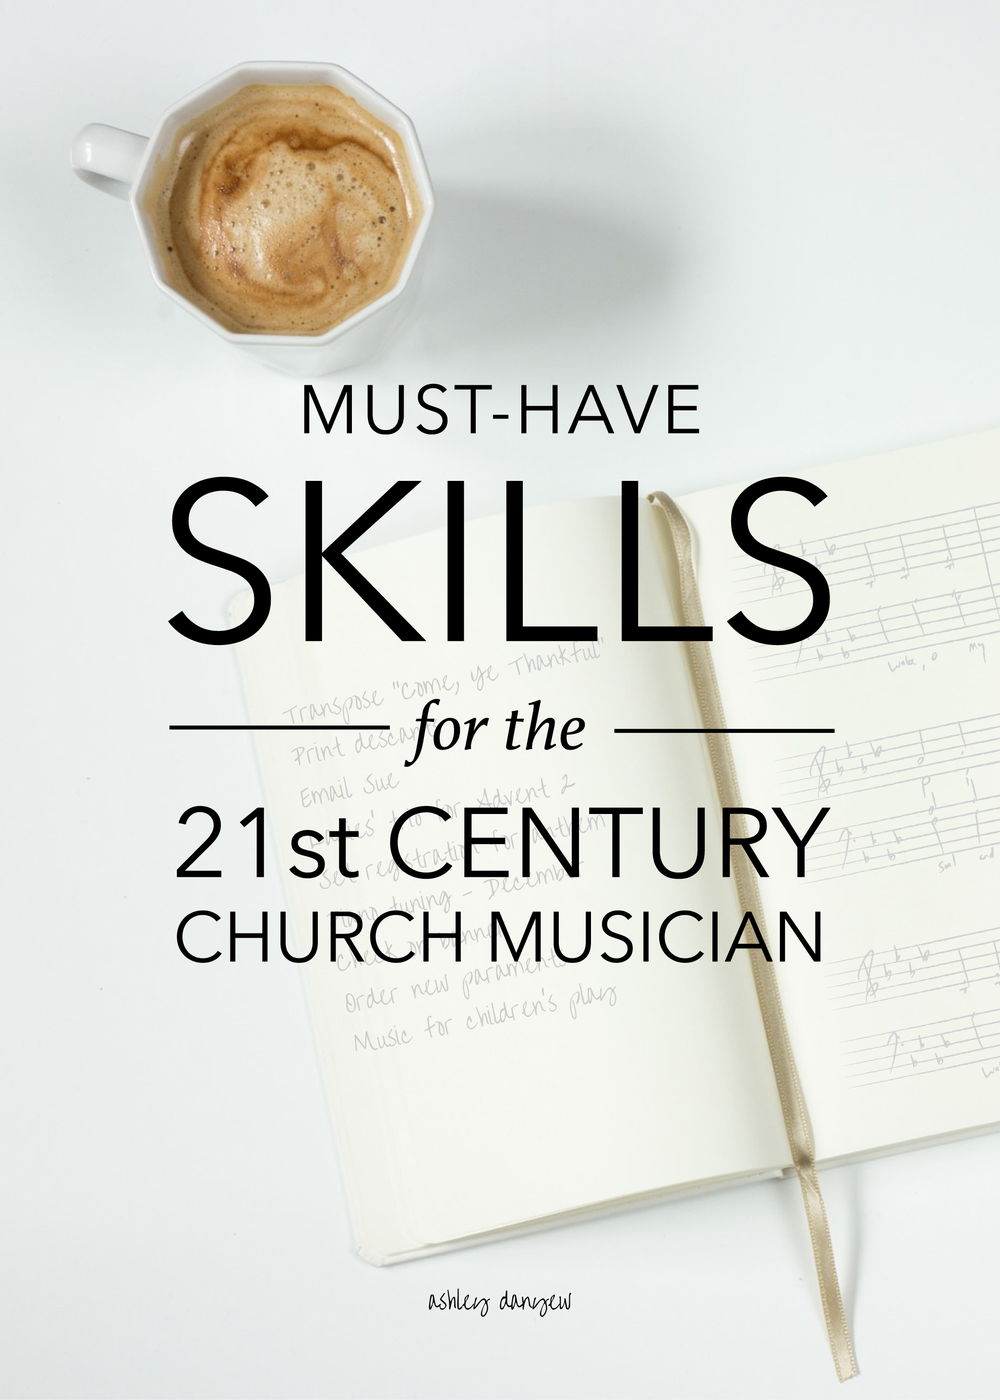 Copy of Must-Have Skills for the 21st Century Church Musician